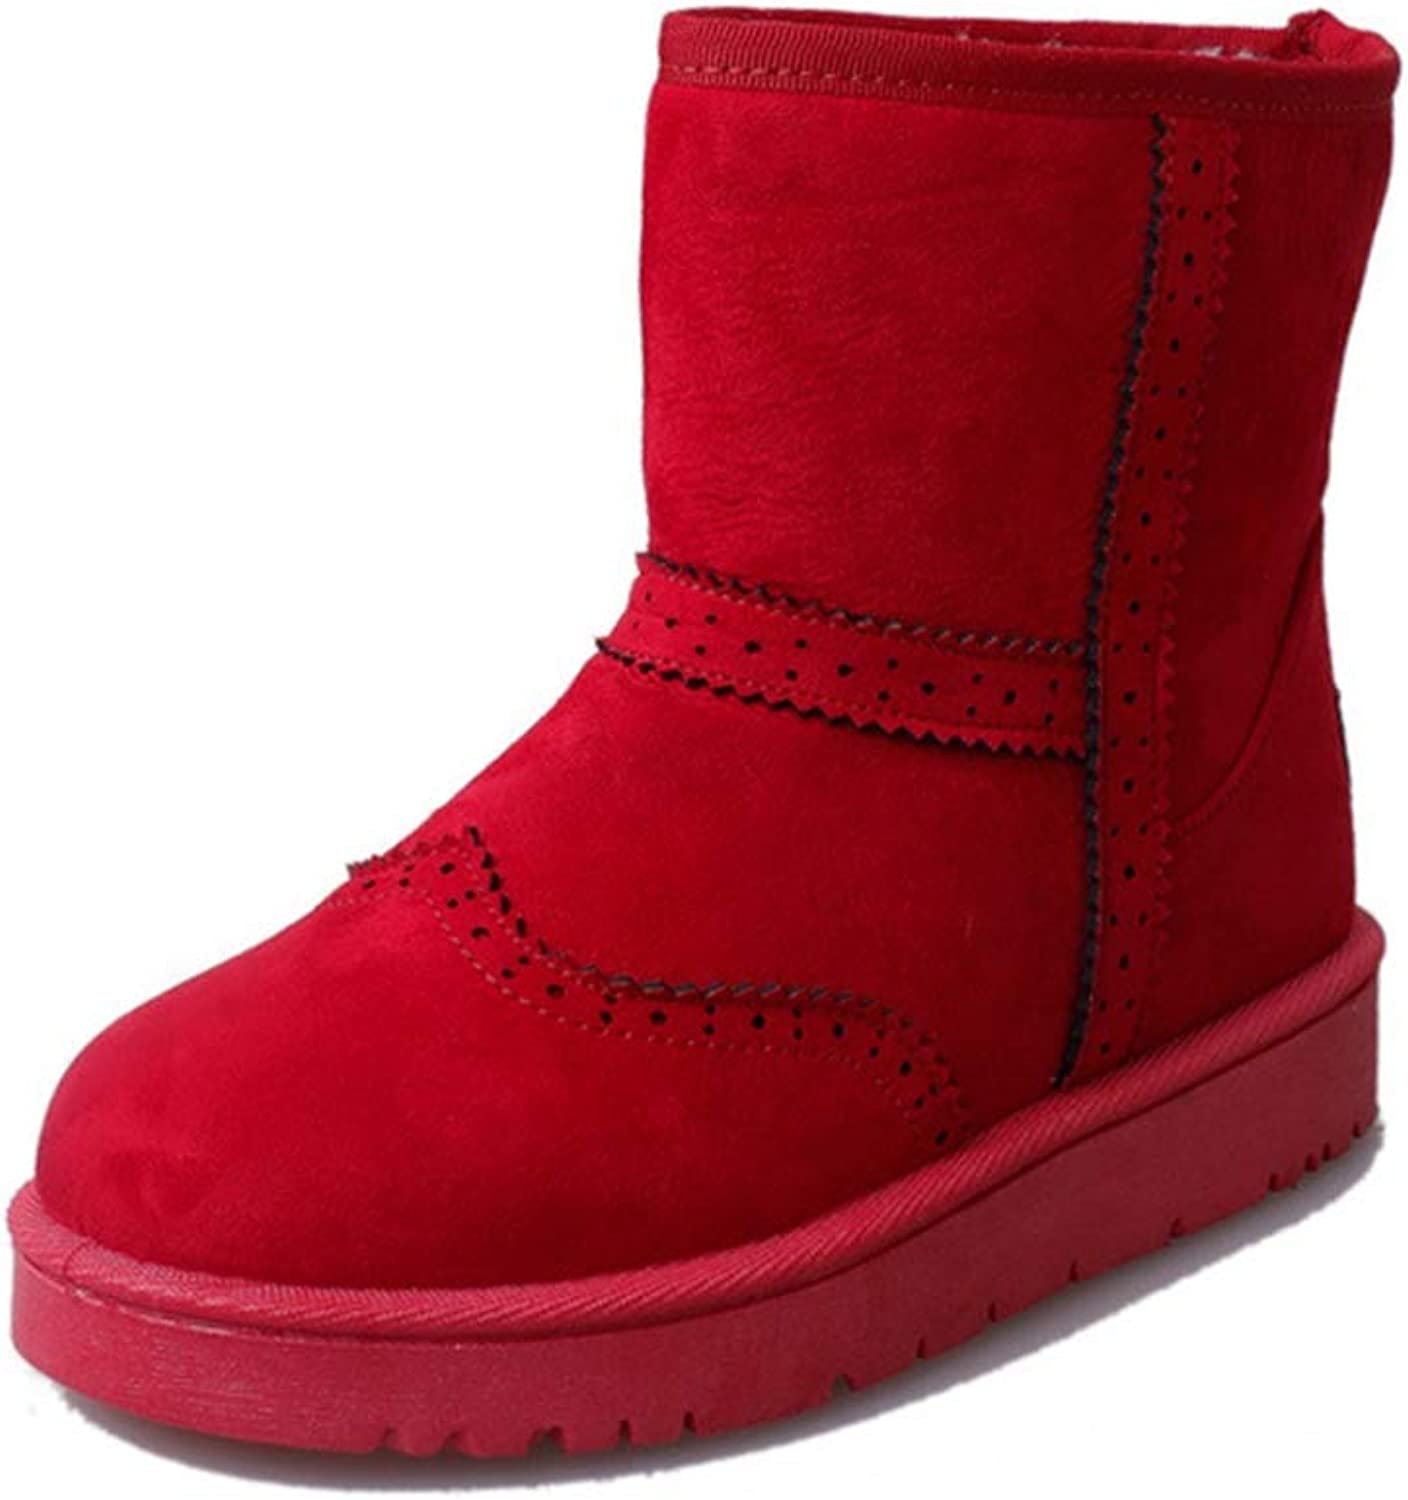 York Zhu Women Boots,Slip-on High-top Warm Cotton Flats Winter Snow Boots